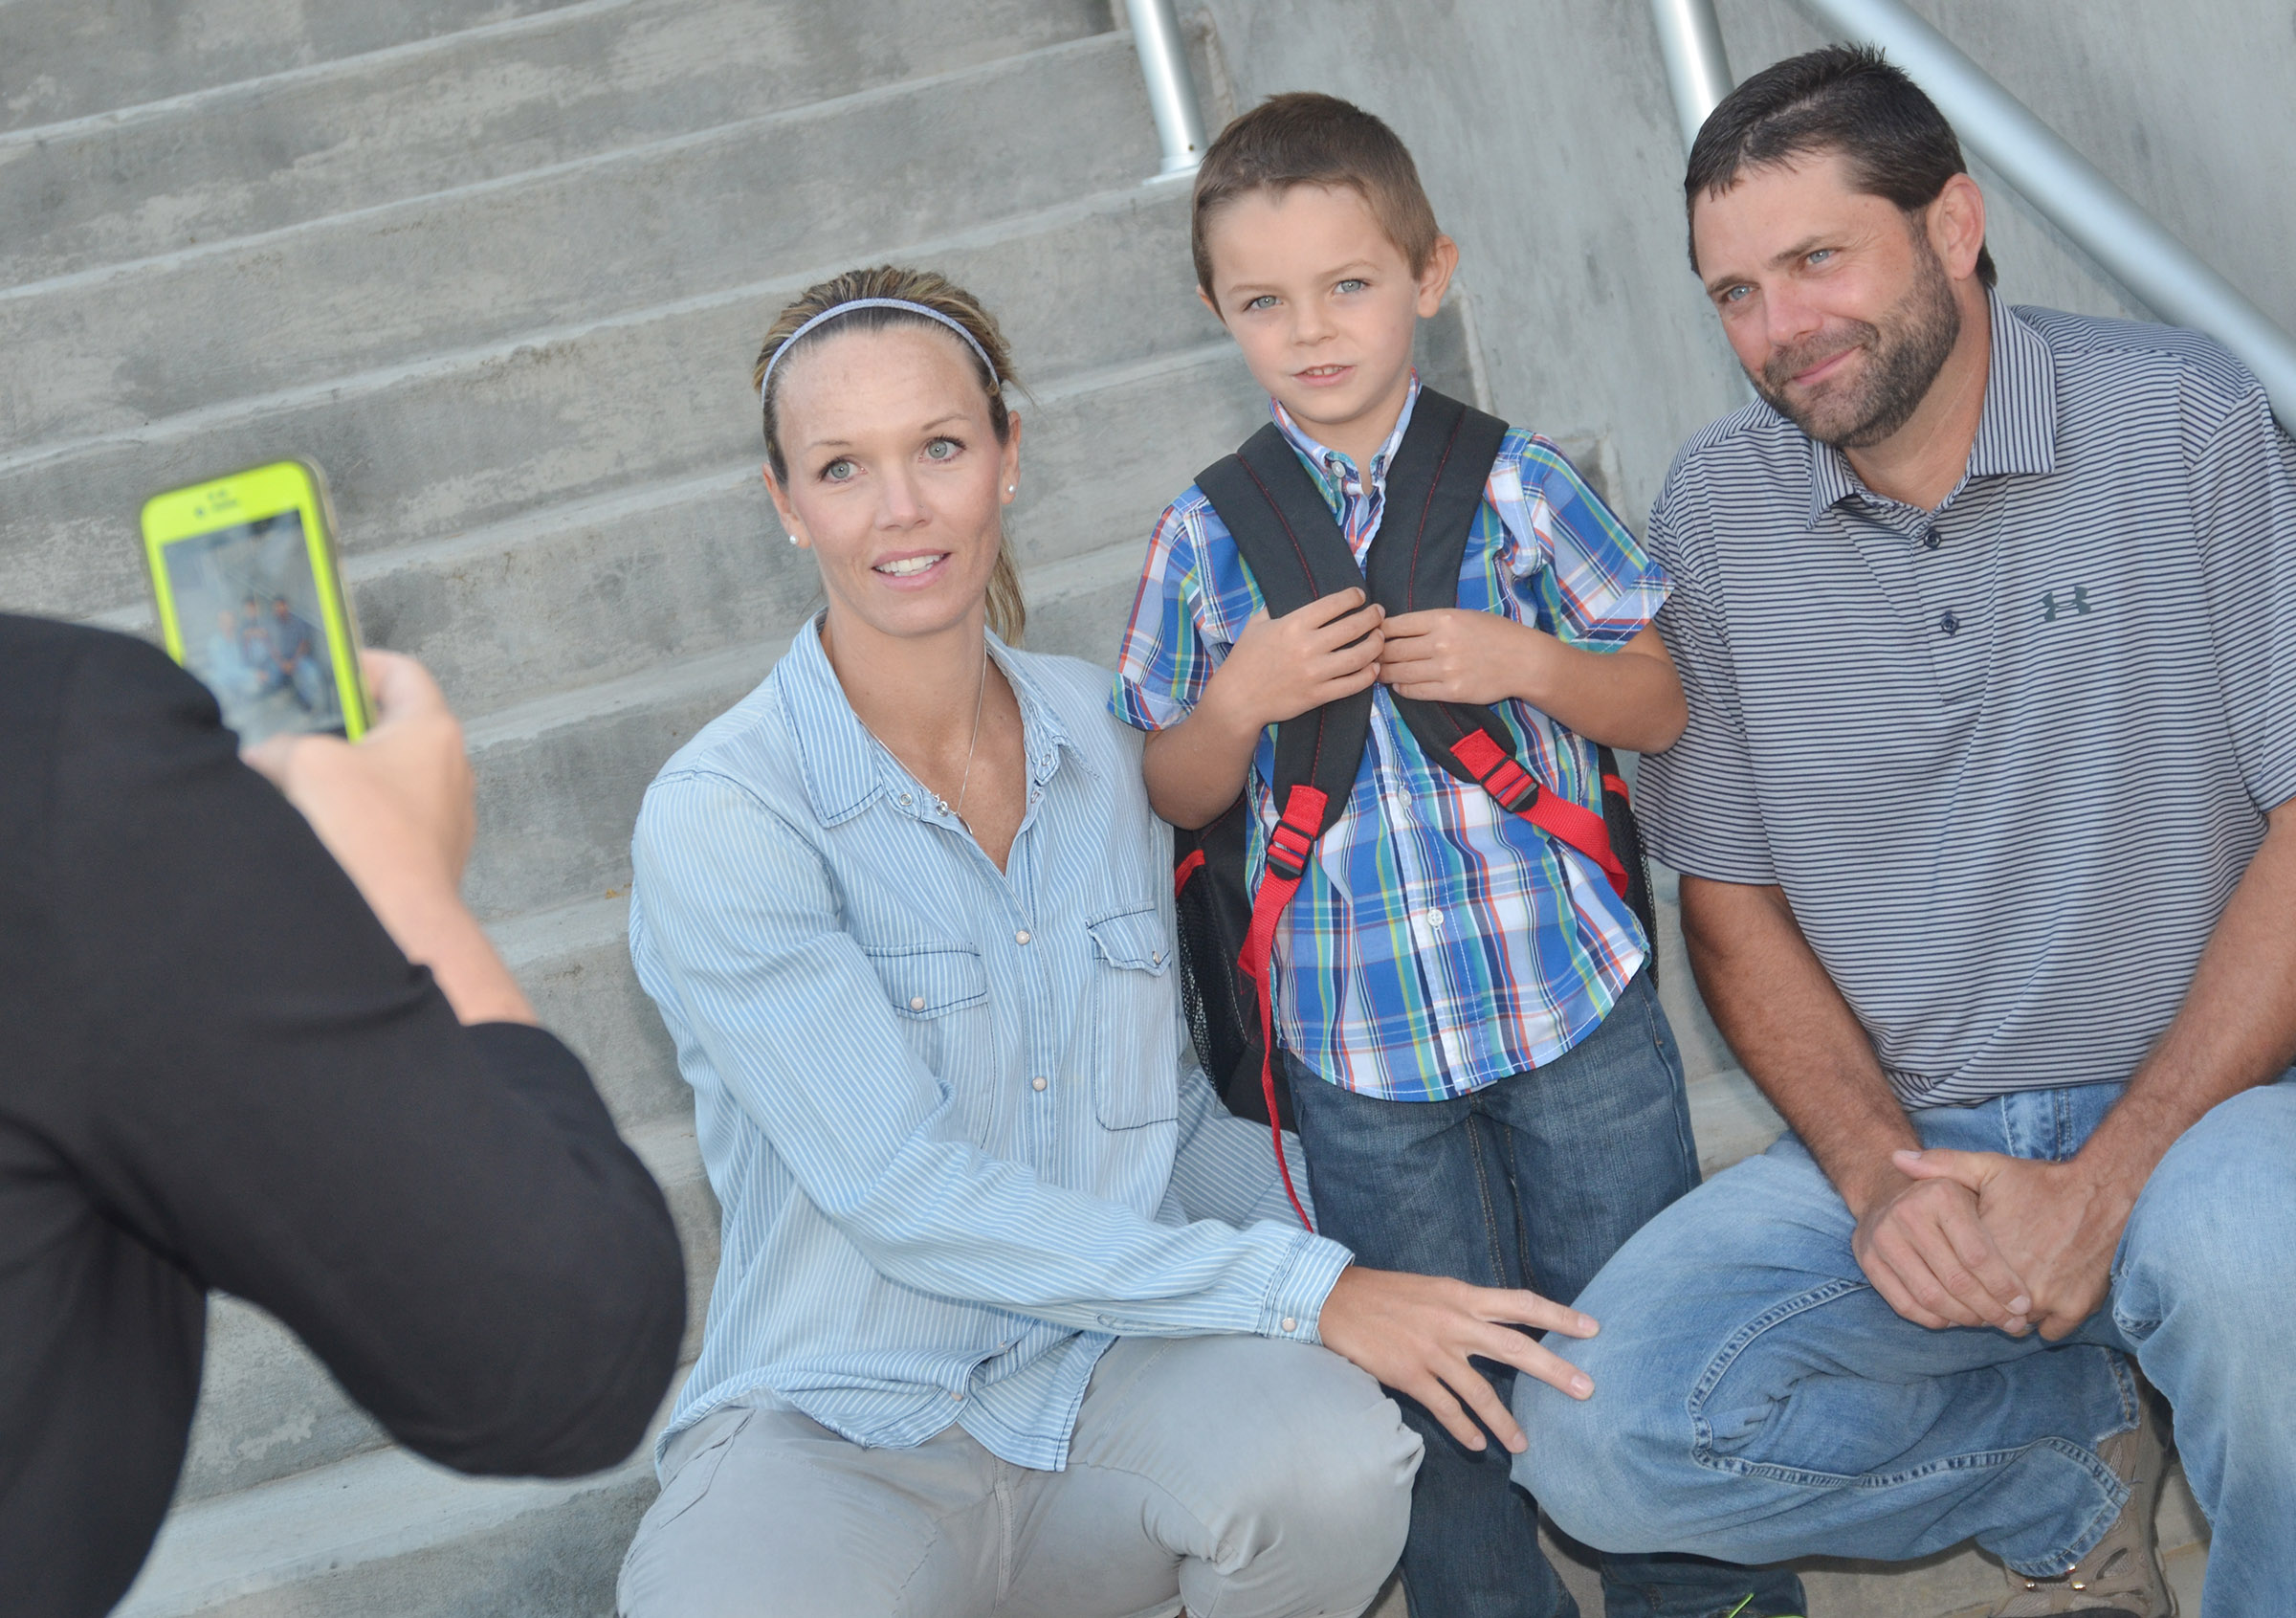 CES kindergartener Hayden Goff takes a photo with his parents, Tasha and Correy. Tasha Goff is an instructional assistant at Campbellsville High School.